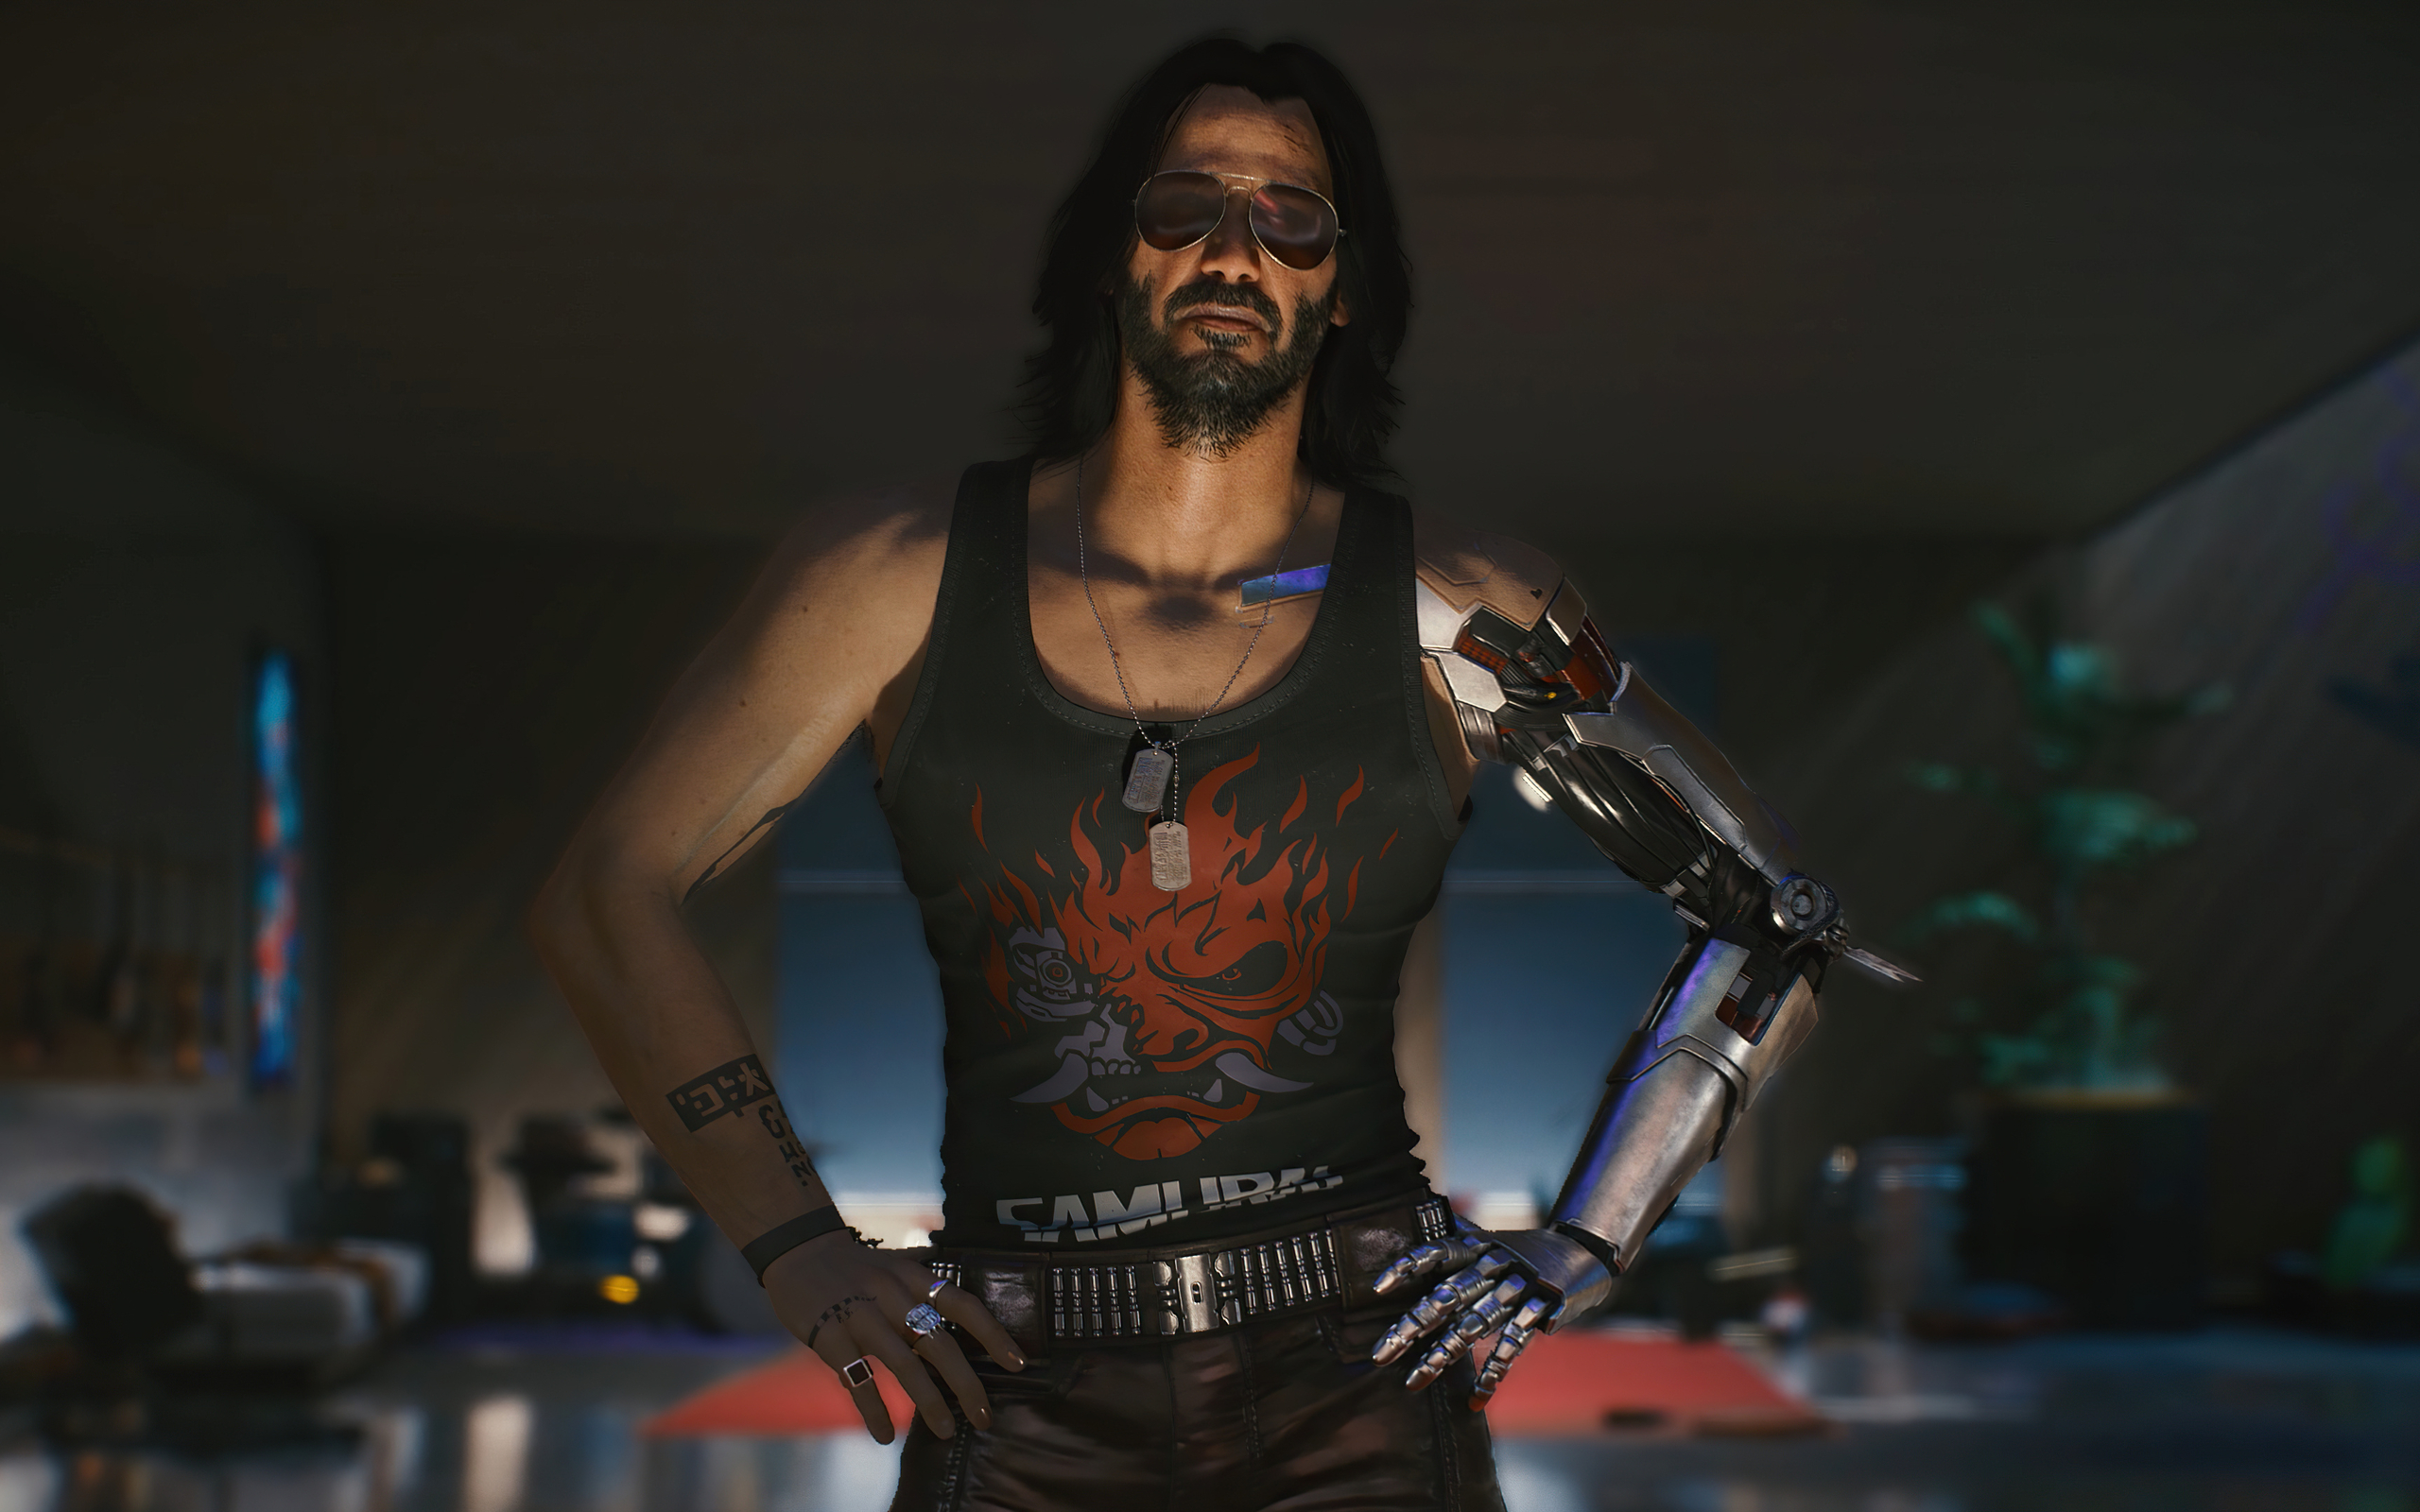 keanu-reeves-as-johnny-silverhand-cyberpunk-2077-9t.jpg